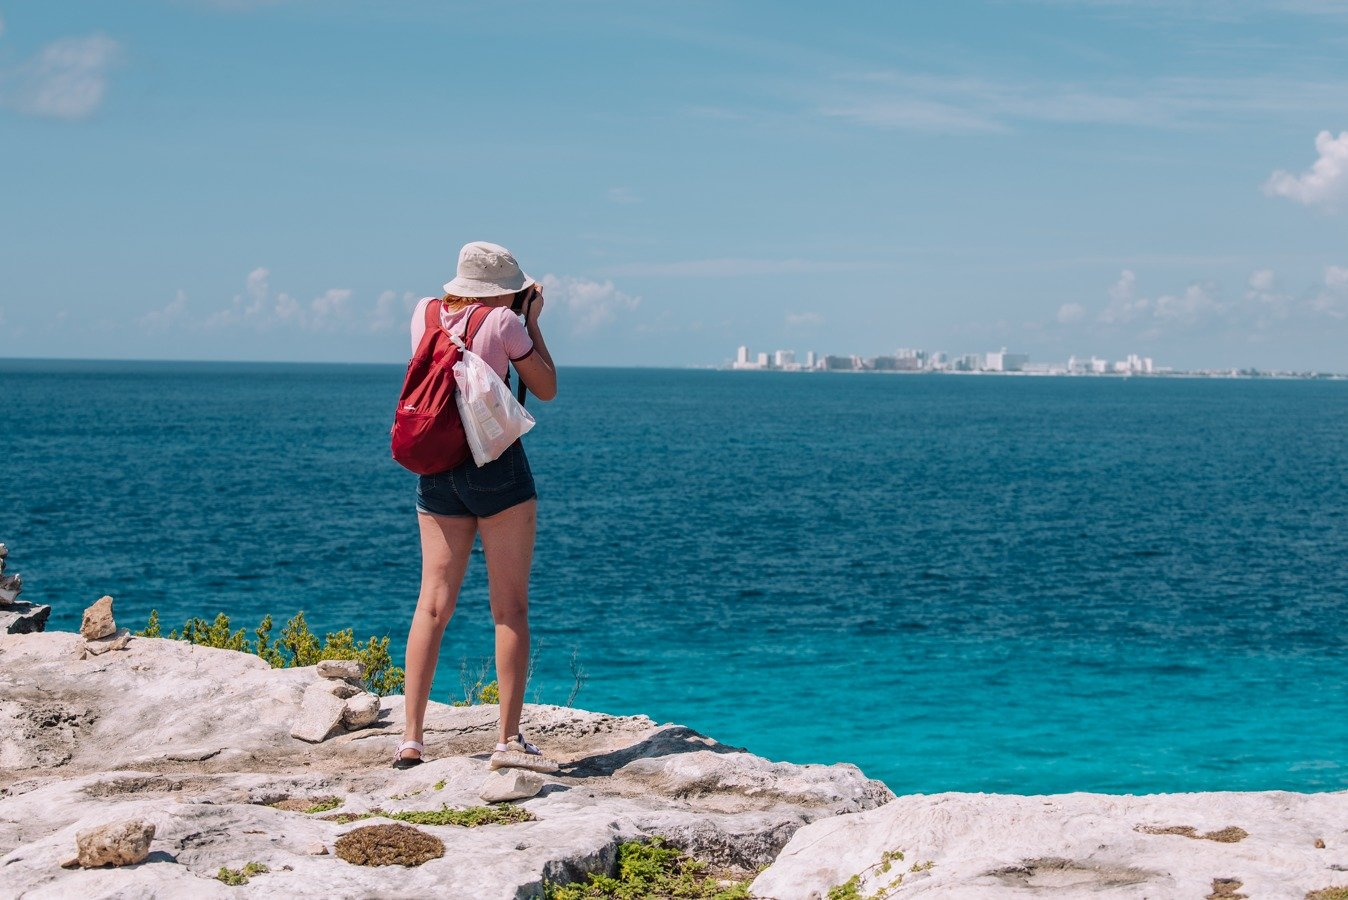 3 Days On Isla Mujeres. What to do and where to eat